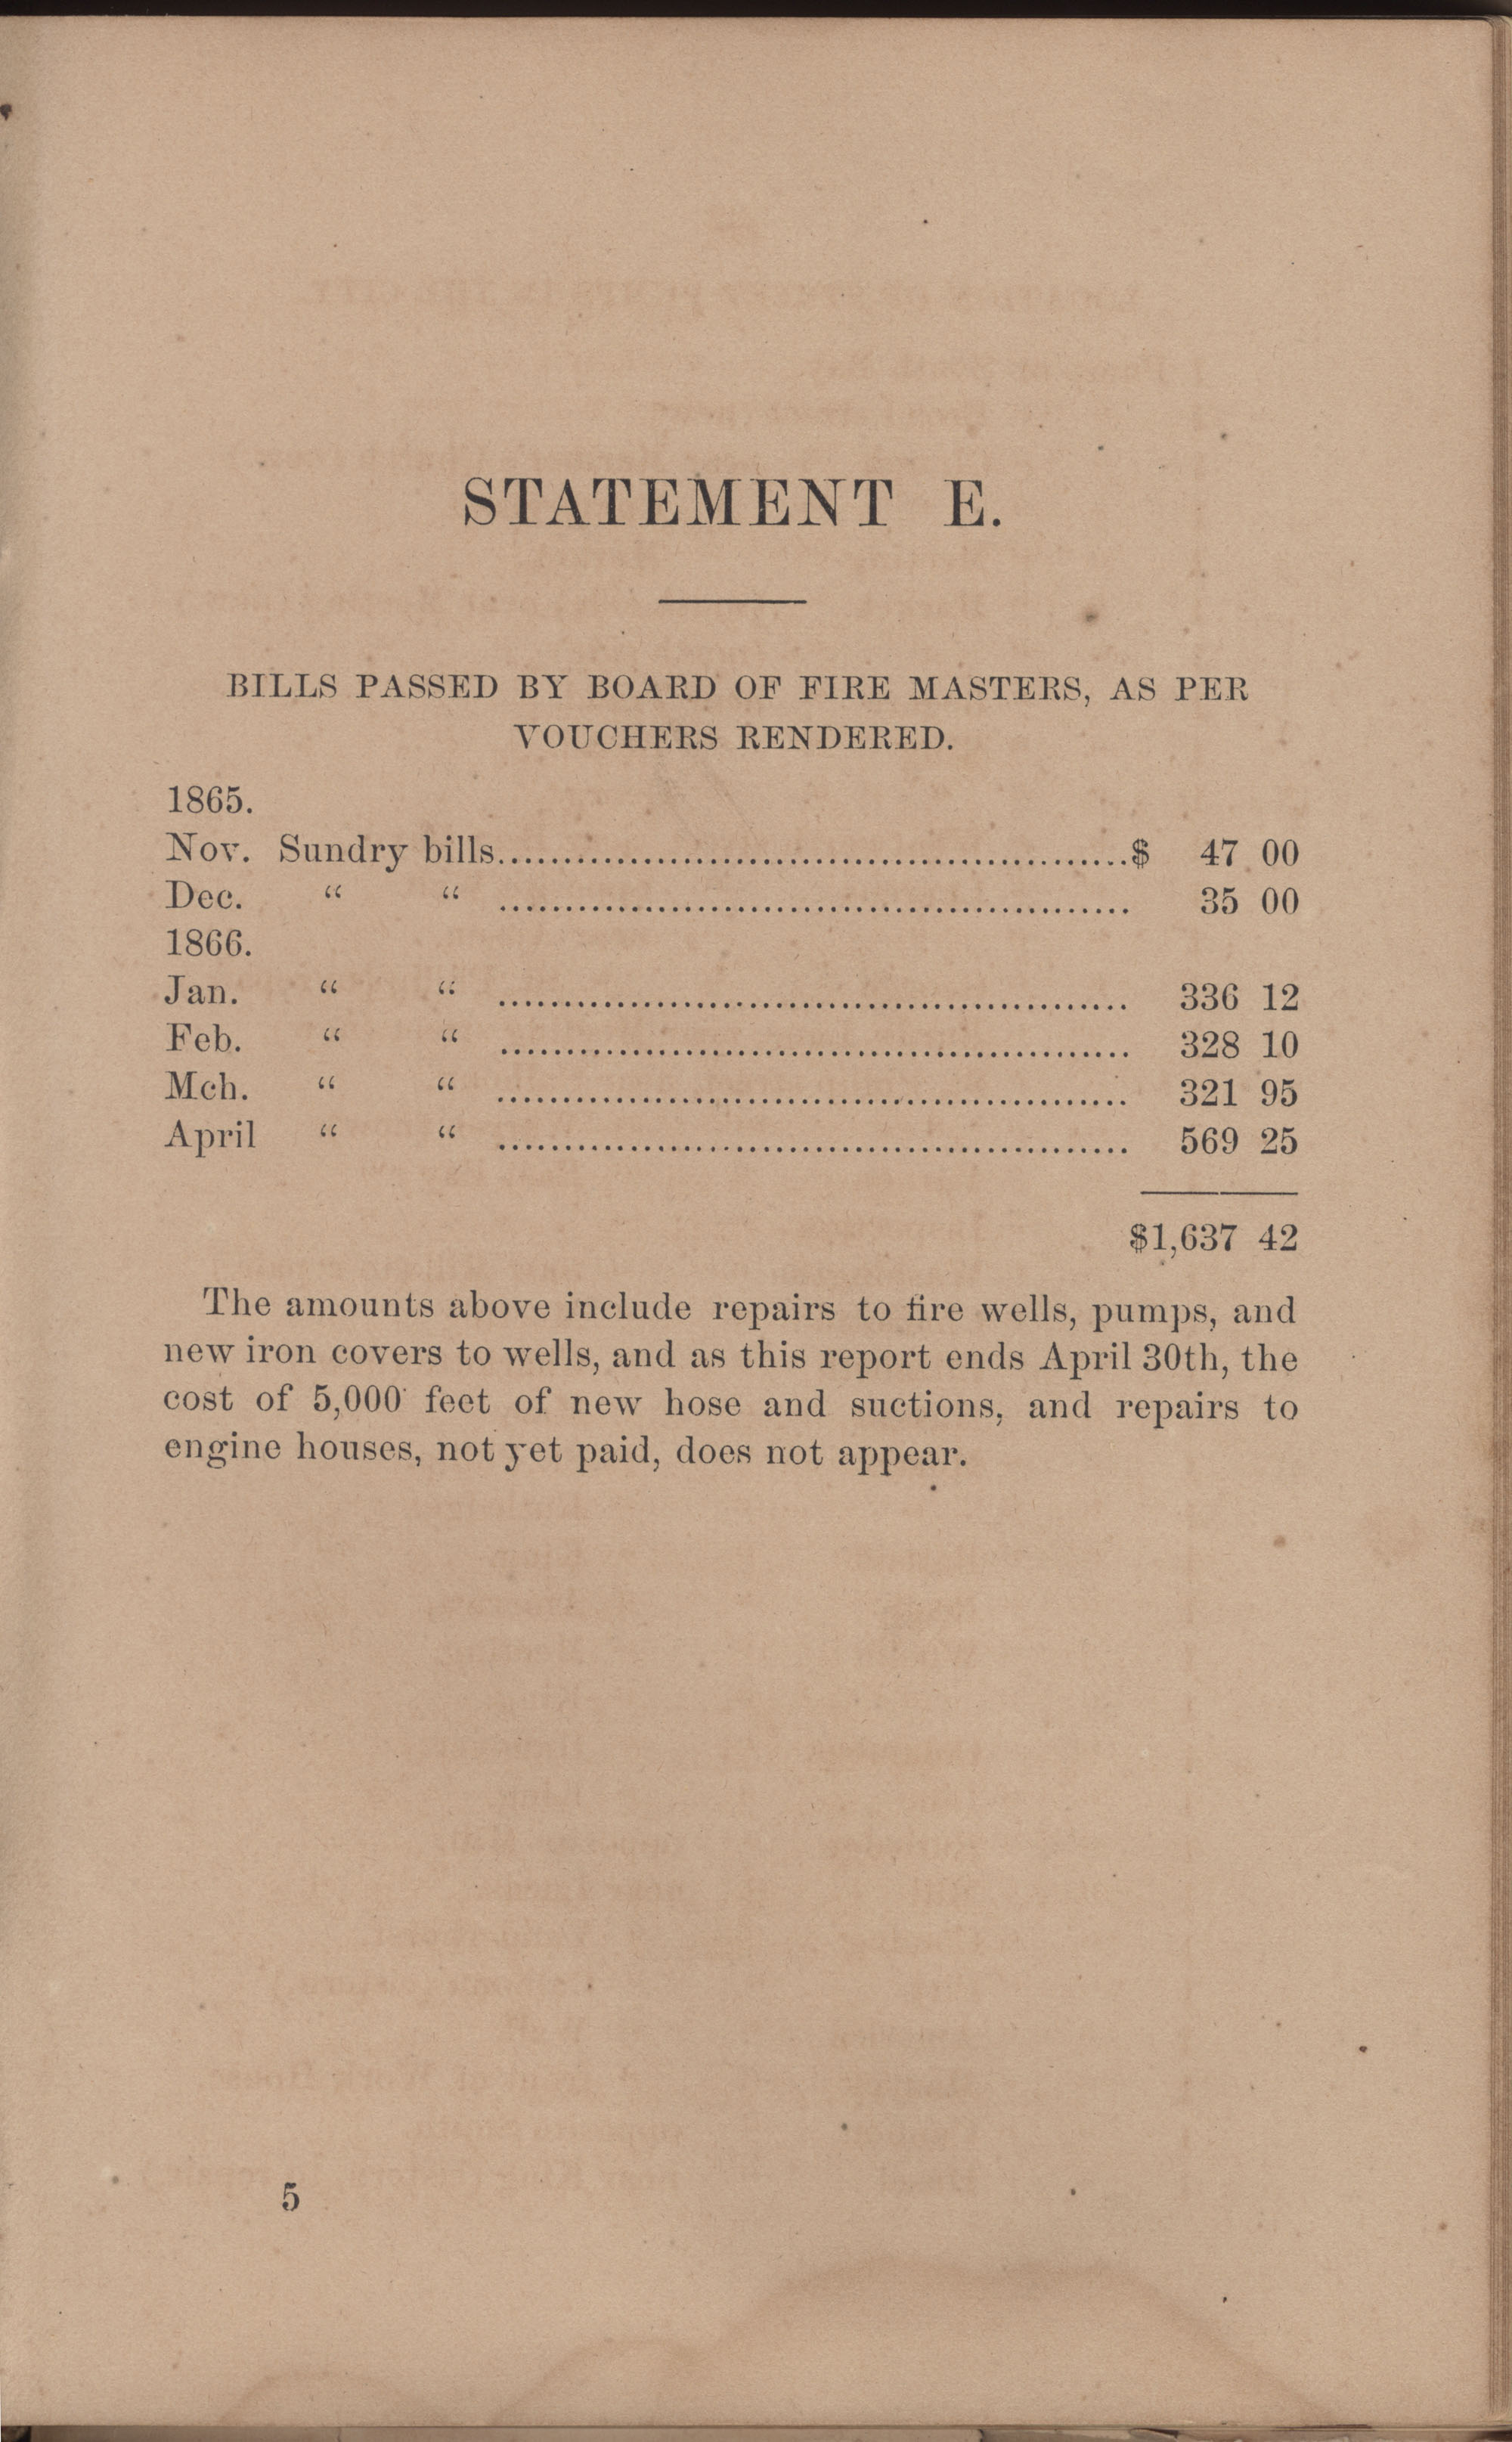 Annual Report of the Chief of the Fire Department of the City of Charleston, page 129